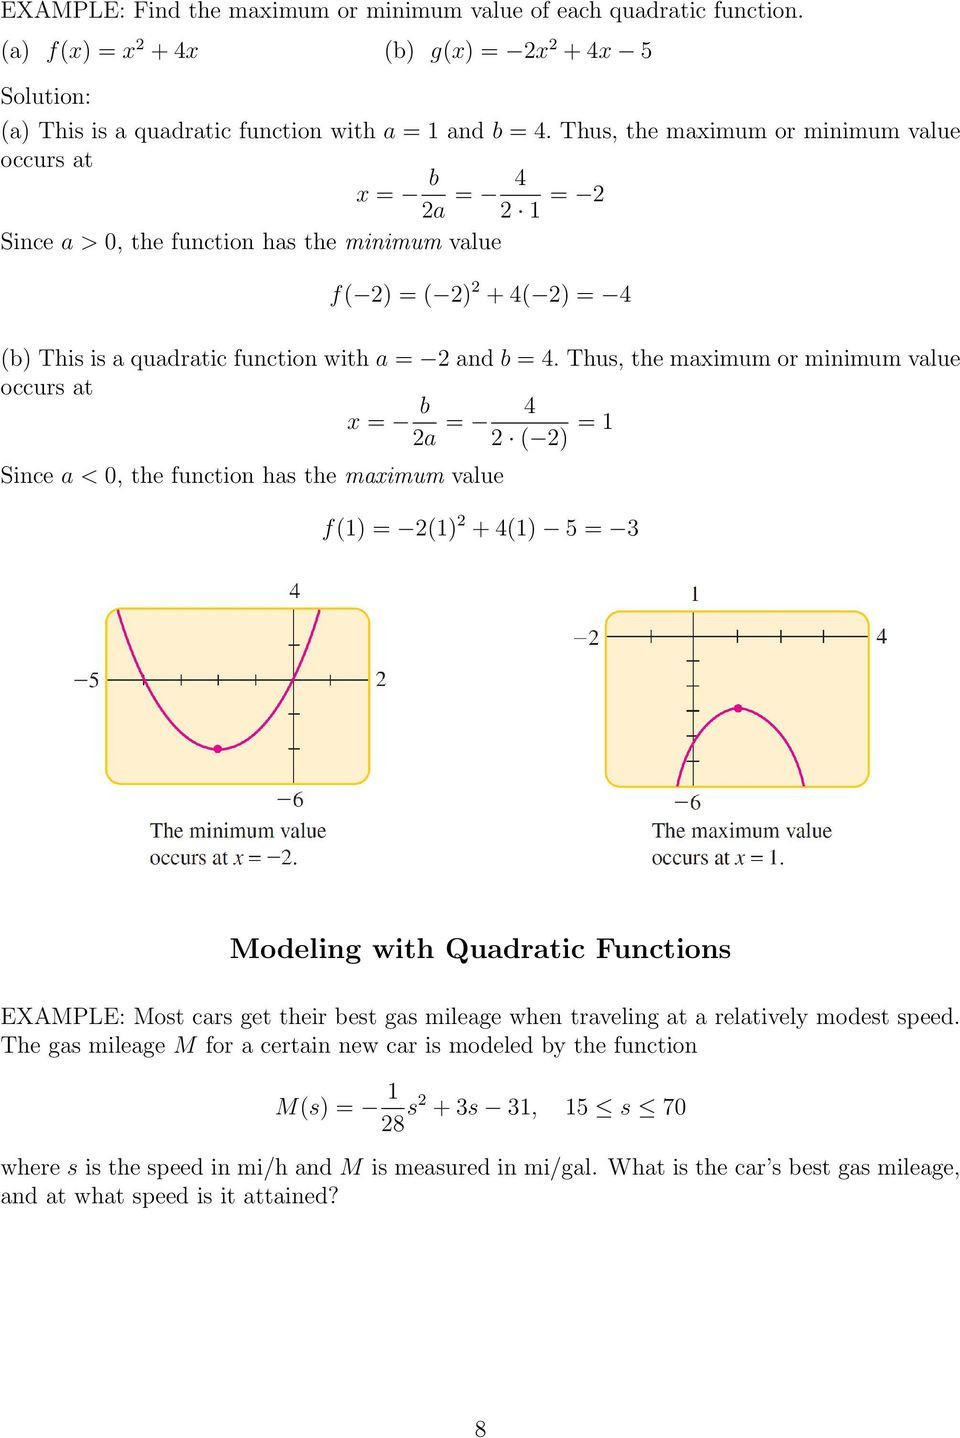 Quadratic Functions Worksheet with Answers Section 3 1 Quadratic Functions and Models Pdf Free Download